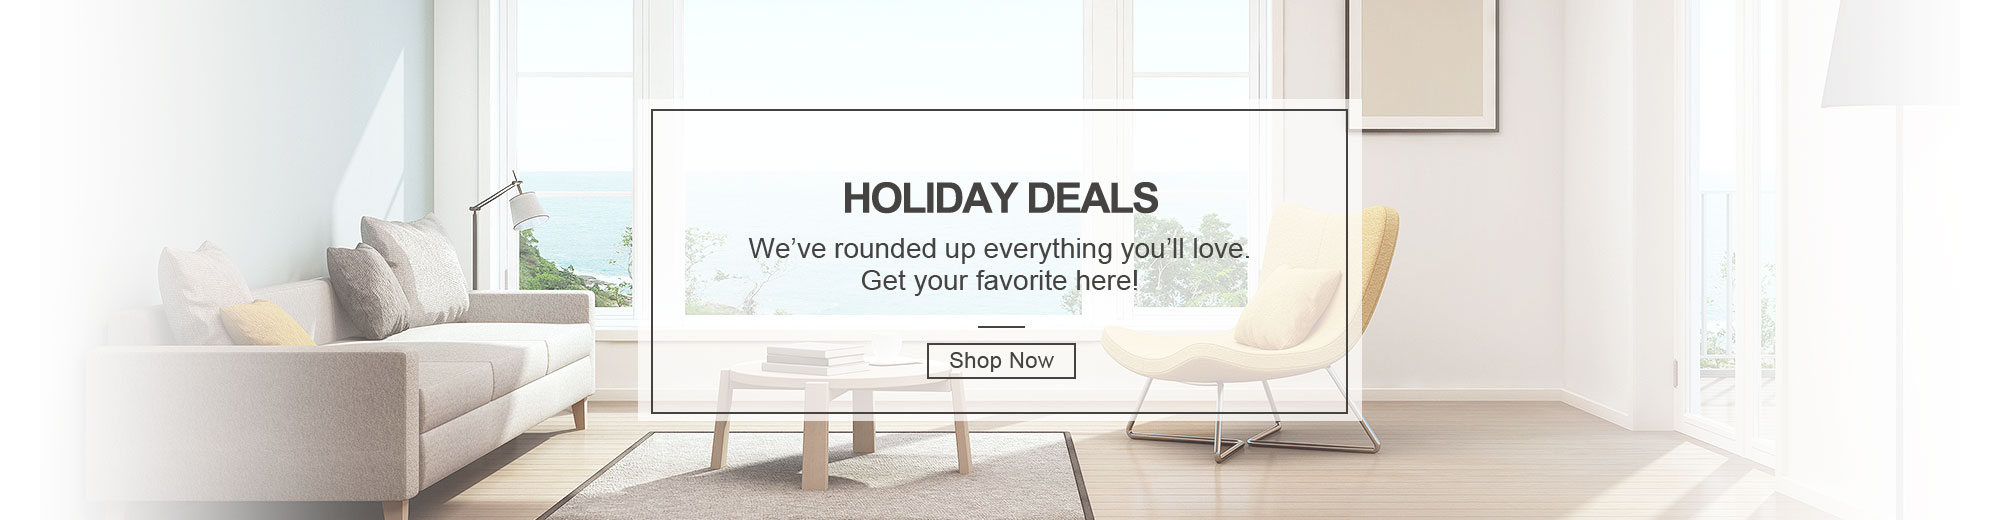 Costway Holiday Deal